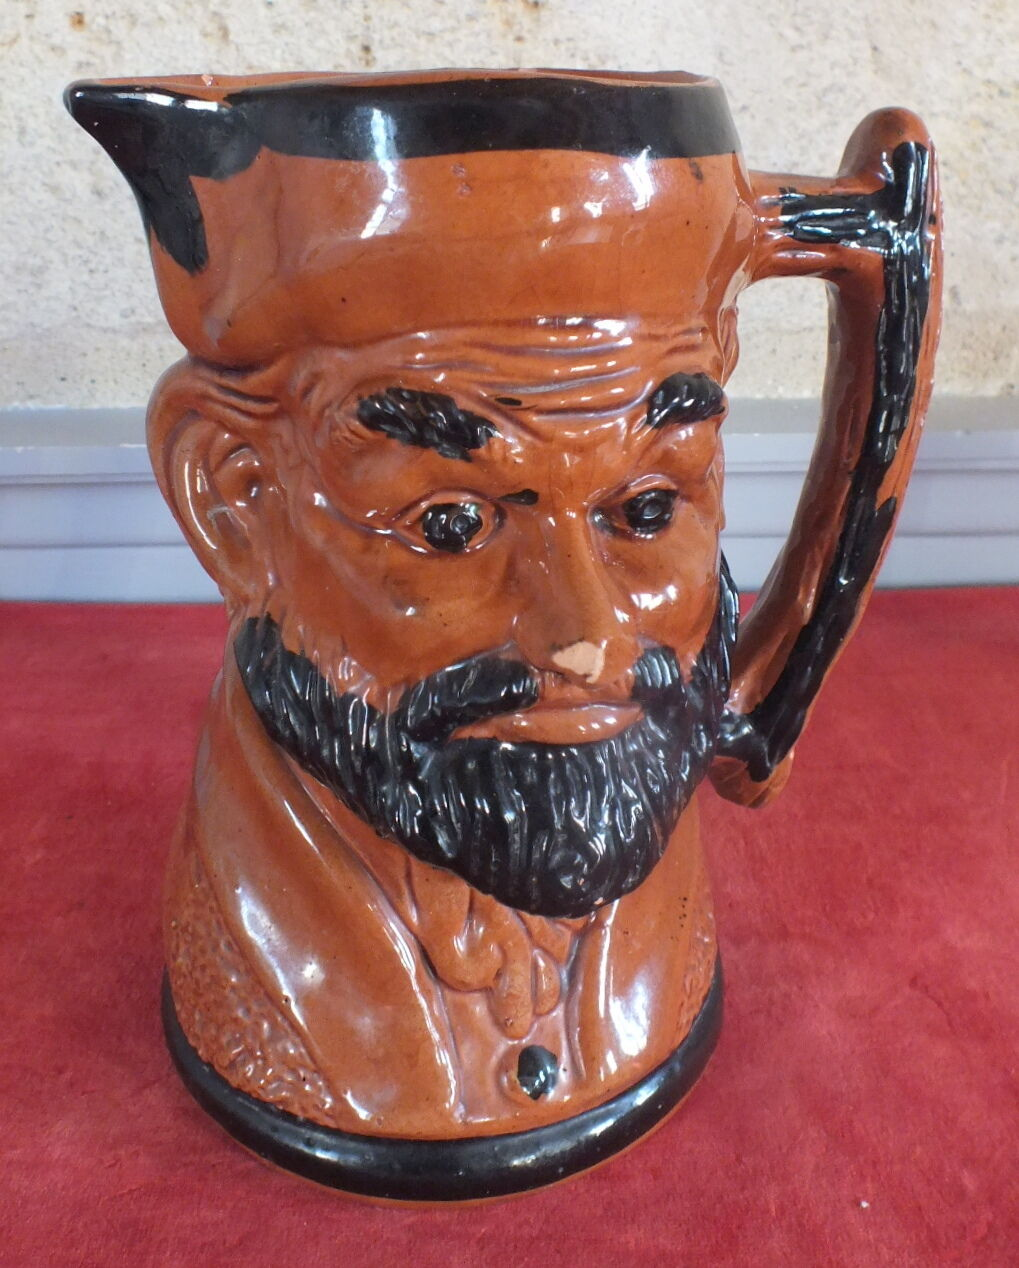 Pitcher slip character bearded man pitcher bearded man